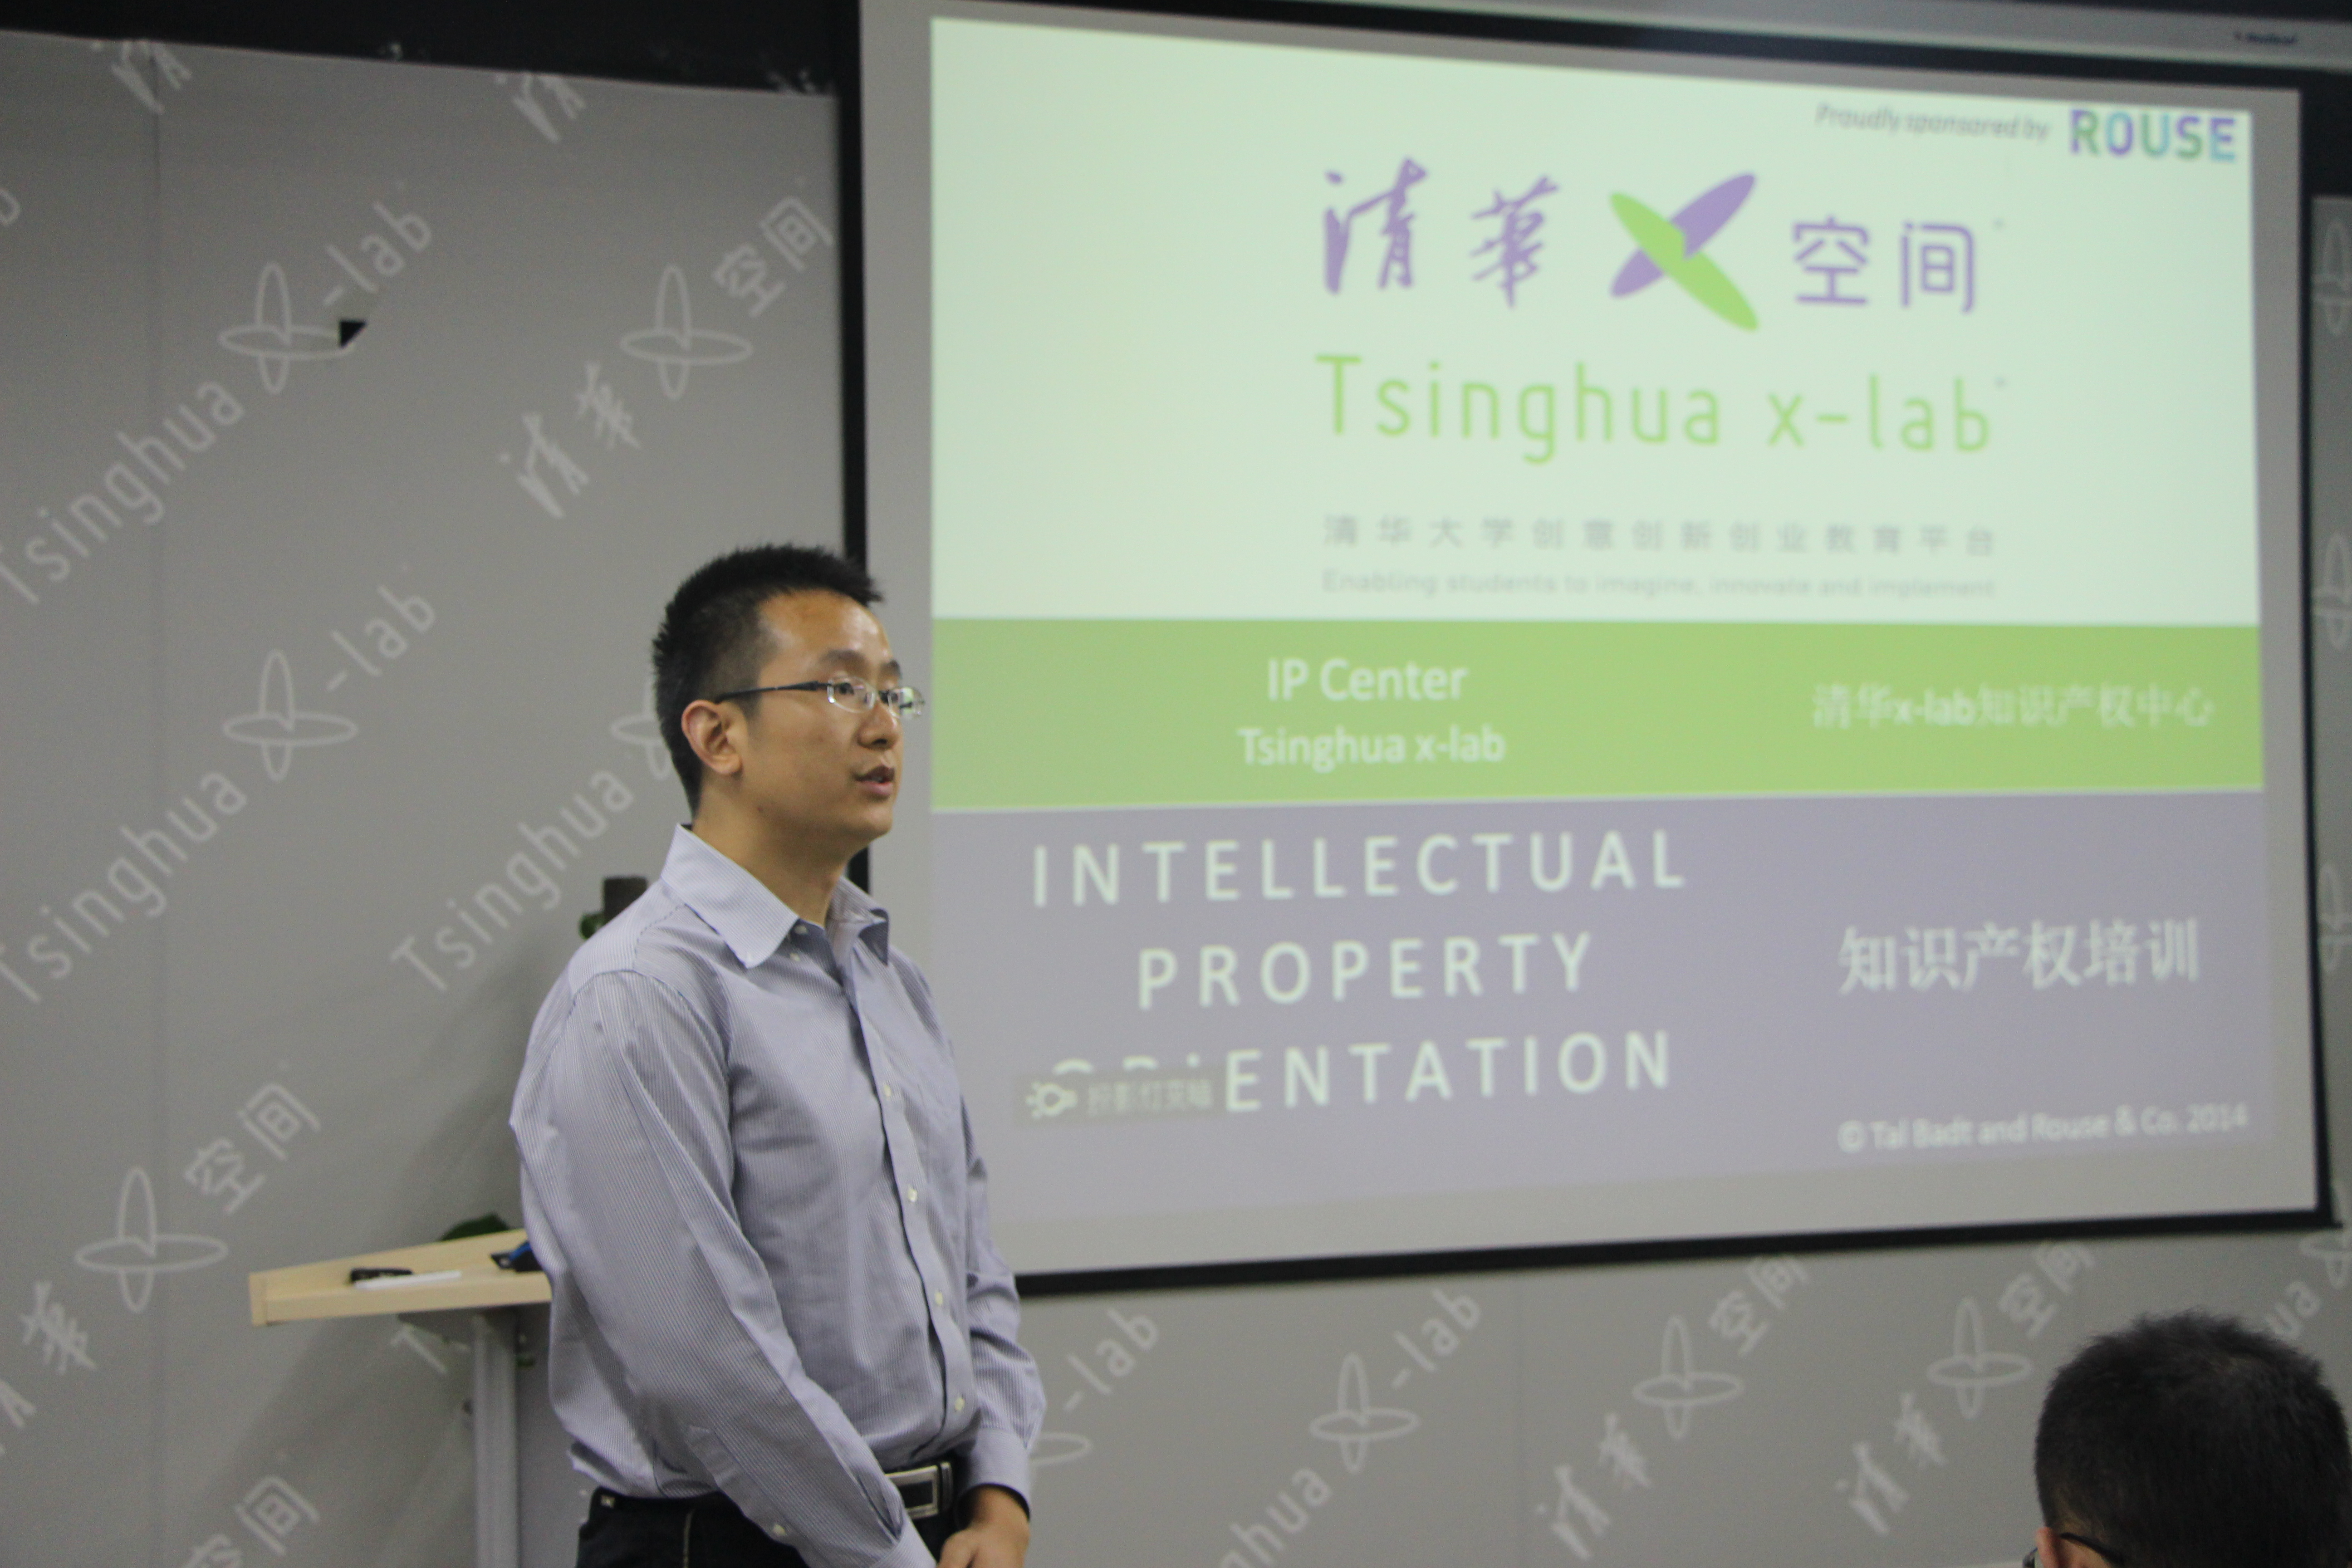 【x-lab Talk】IP Orientation by Eric Chang